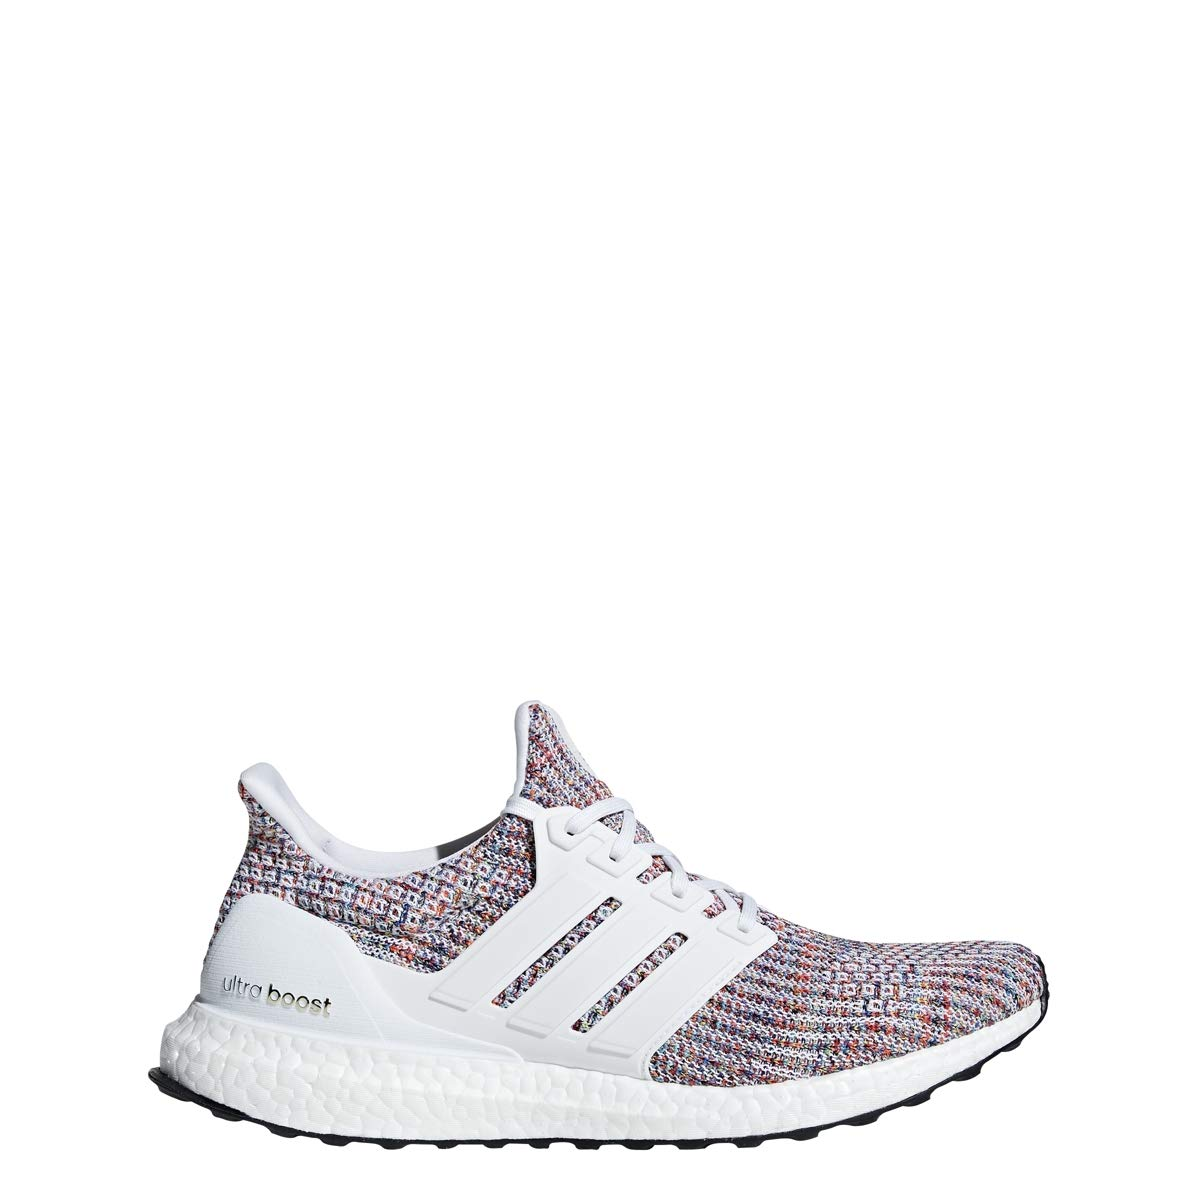 Galleon Adidas Men S Ultraboost White Collegiate Navy 7 M Us